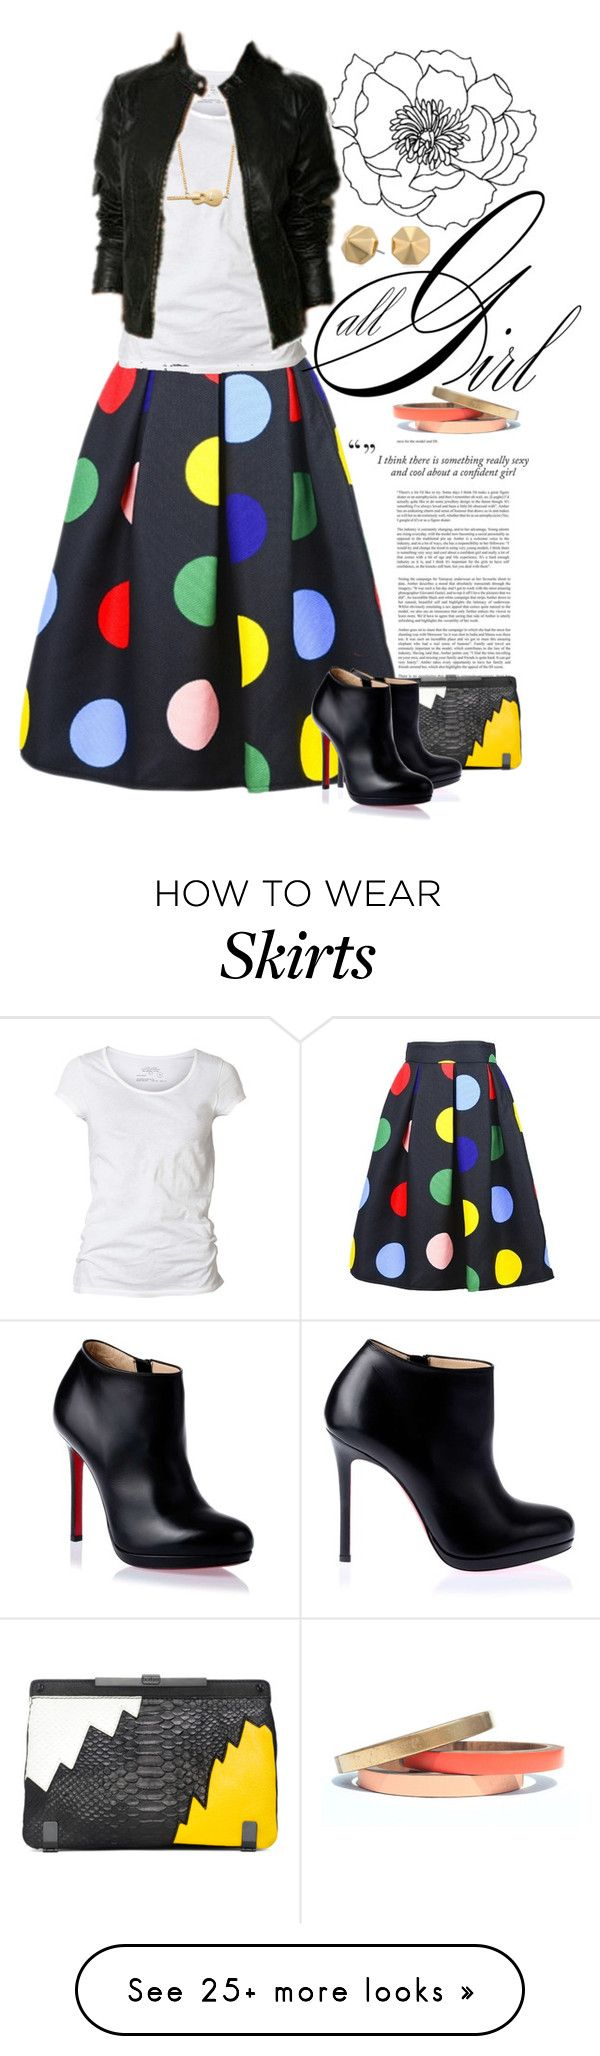 """""""Style Me: Skirt"""" by dawn-scott on Polyvore featuring AllSaints, Marc by Marc Jacobs, Christian Louboutin, Rebecca Minkoff and Voz Collective"""